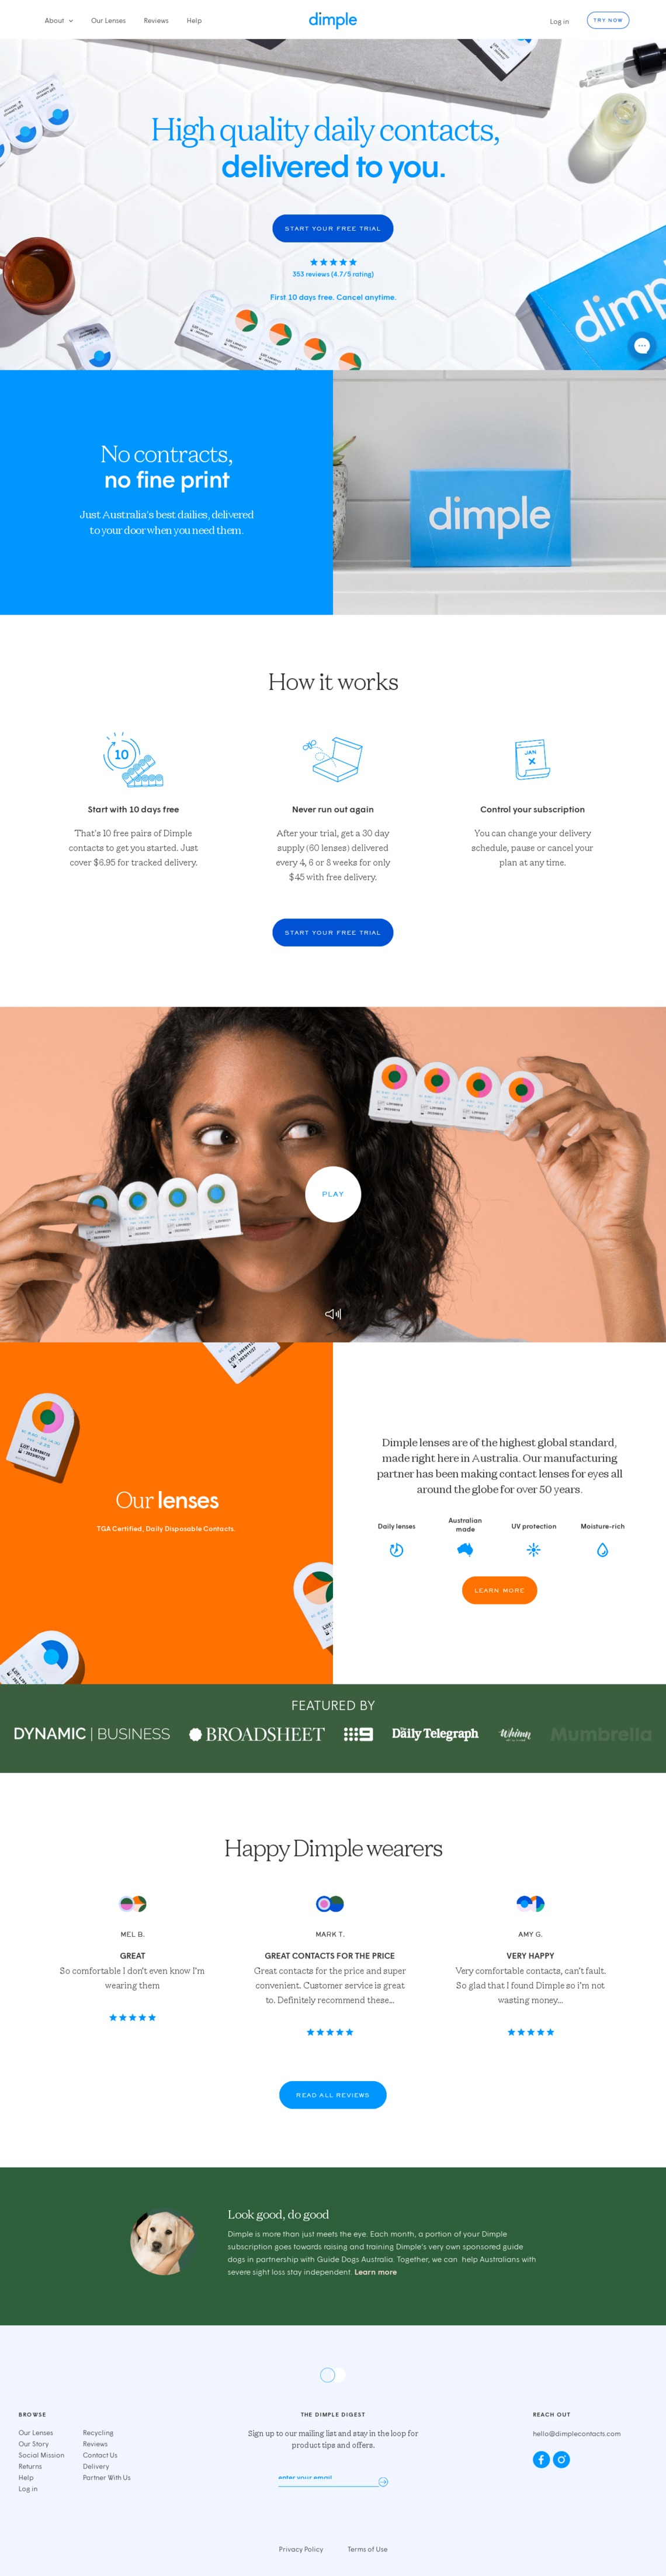 Dimple™ | Affordable Daily Contact Lenses on Subscription